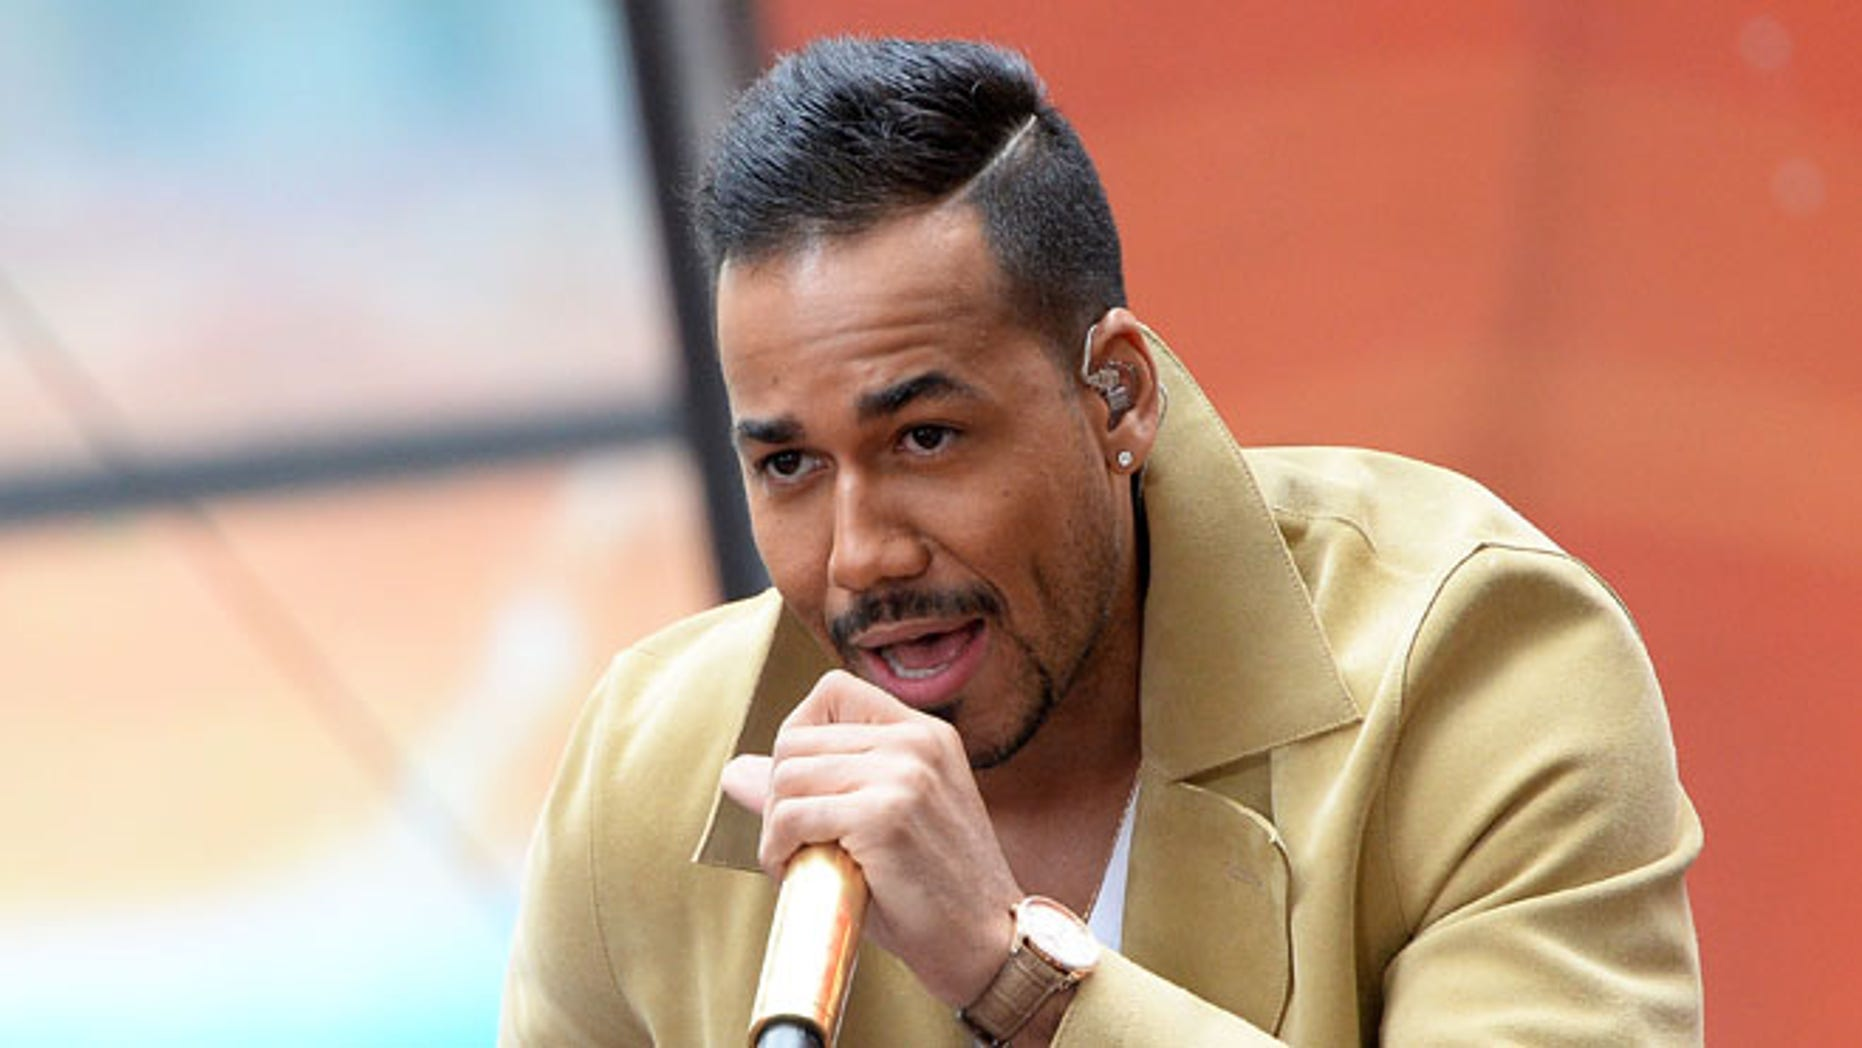 NEW YORK, NY - APRIL 27:  Romeo Santos performs on the NBC's TODAY Show on April 27, 2015 in New York, New York.  (Photo by Slaven Vlasic/Getty Images)